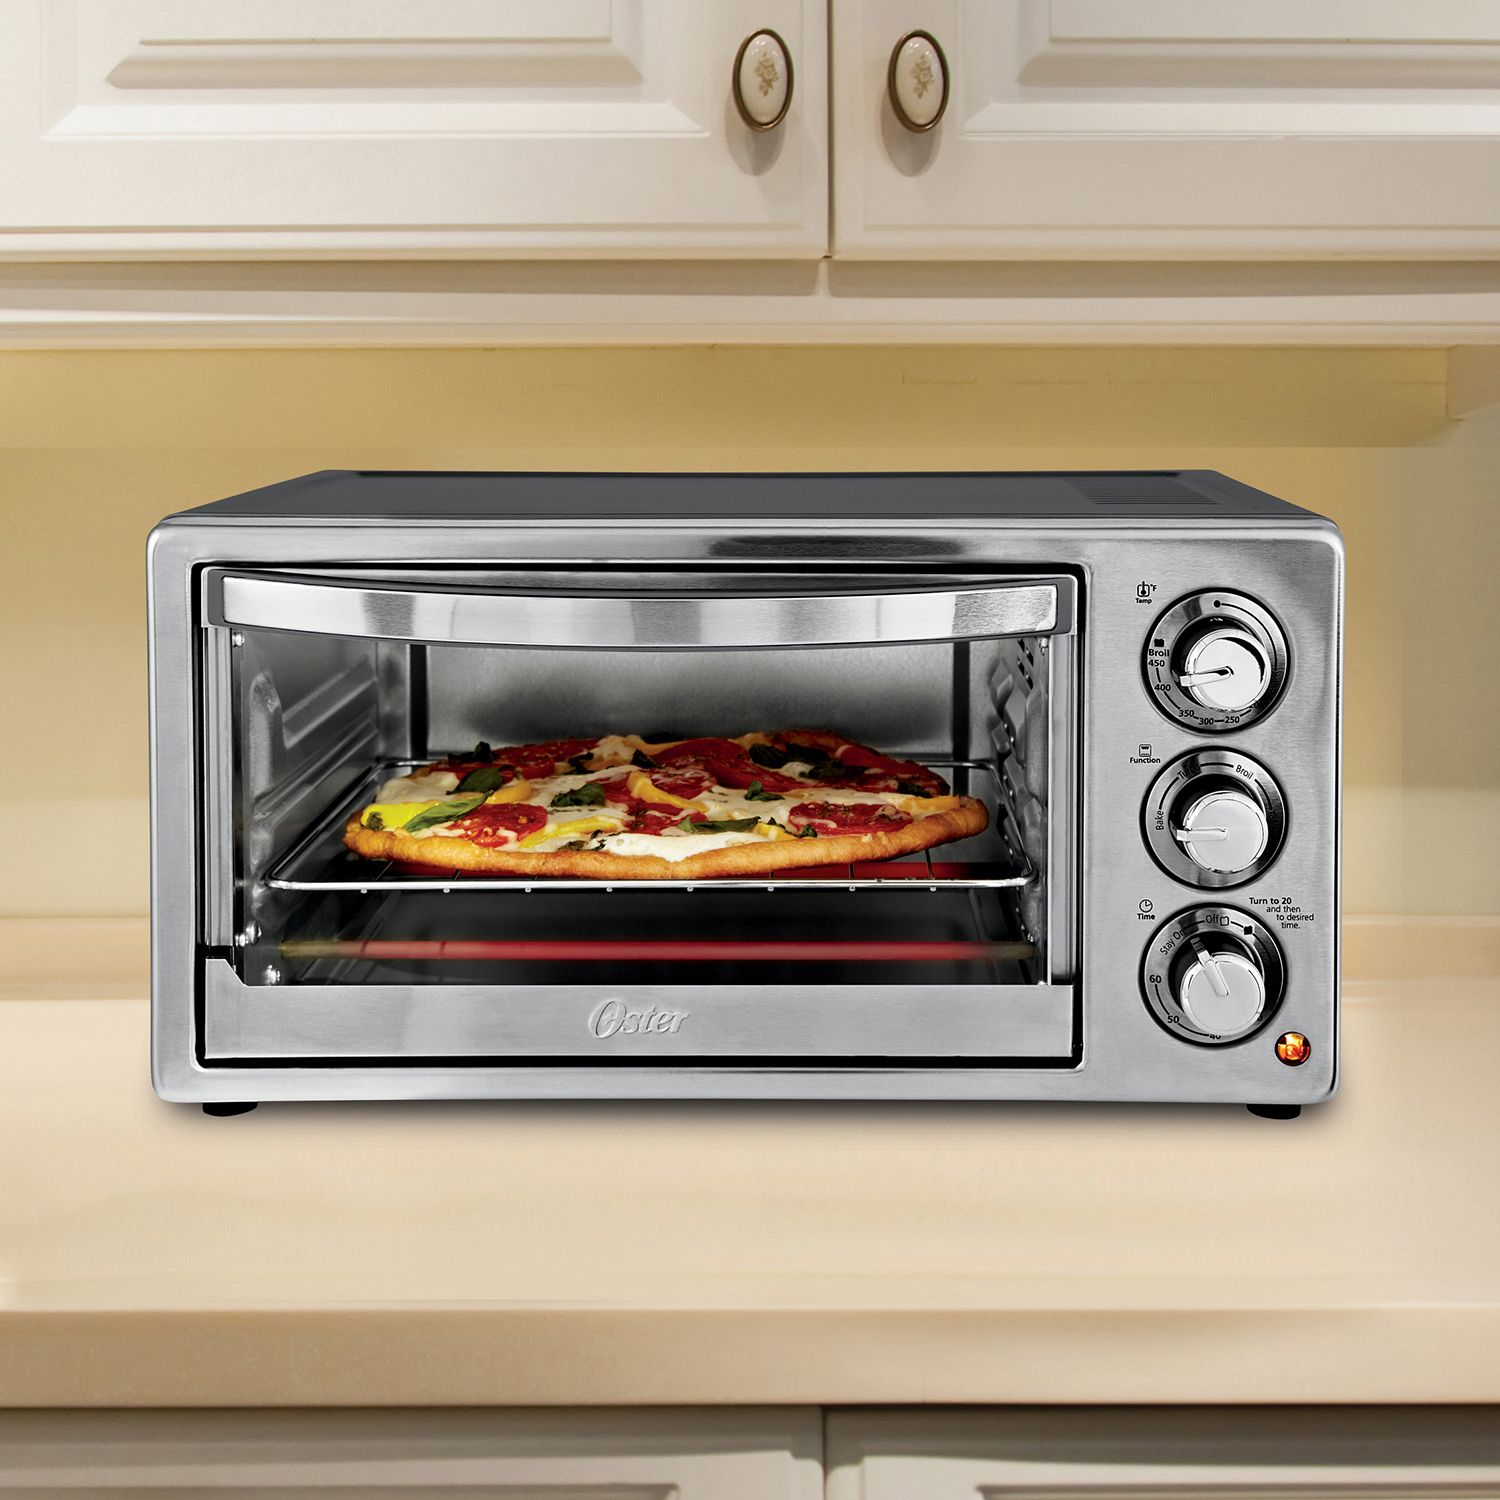 best oven smart convection be you missing countertop ovens might air breville toaster largest what updated